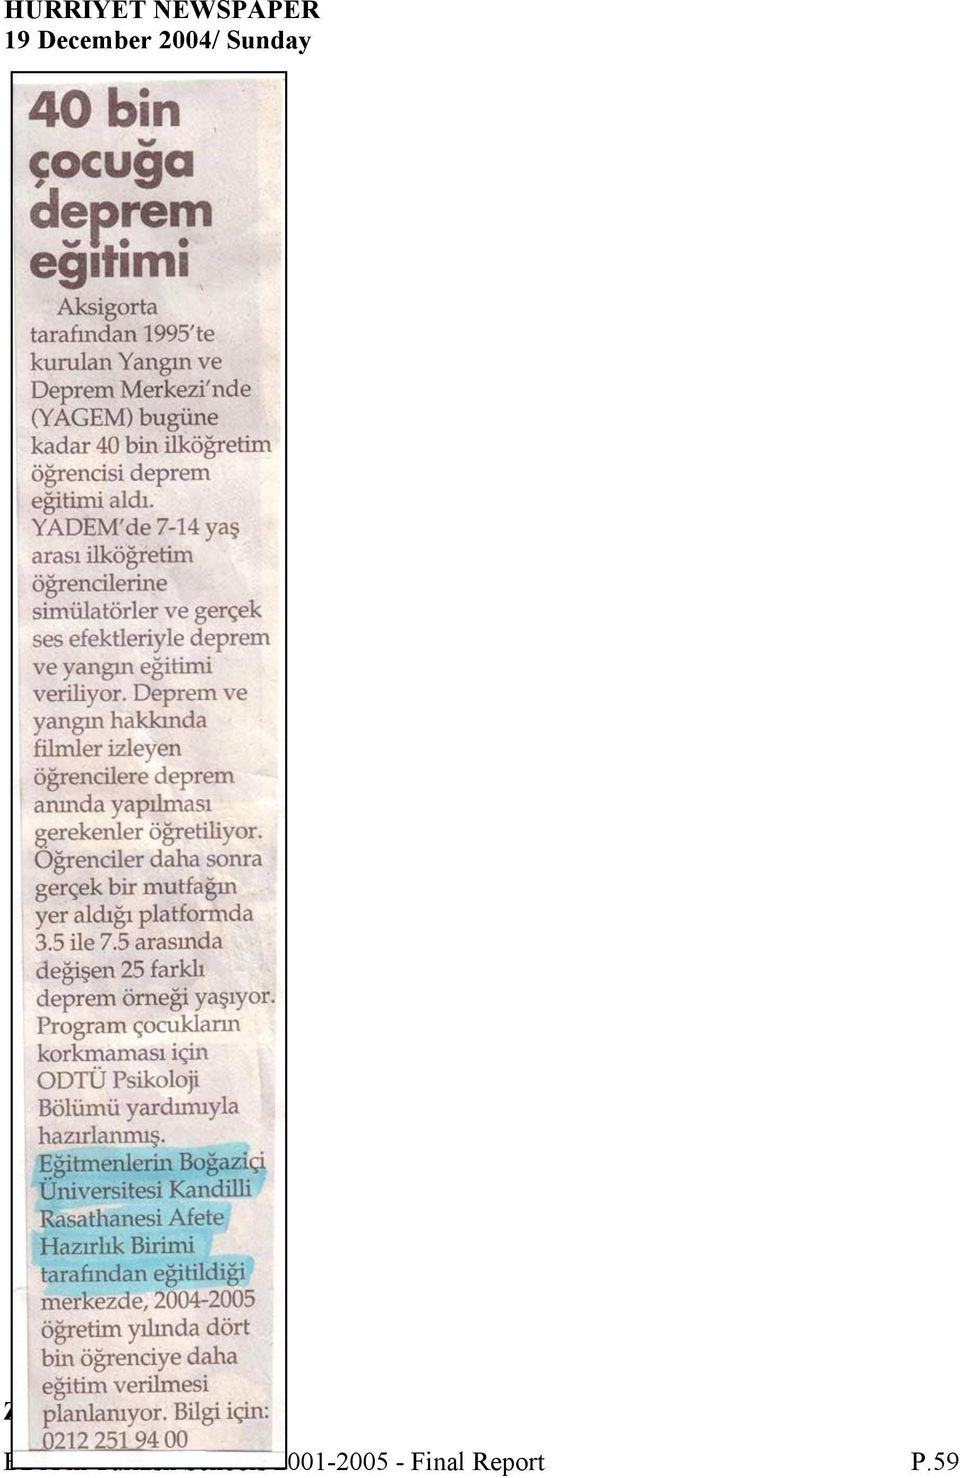 NEWSPAPER BDA in Turkish